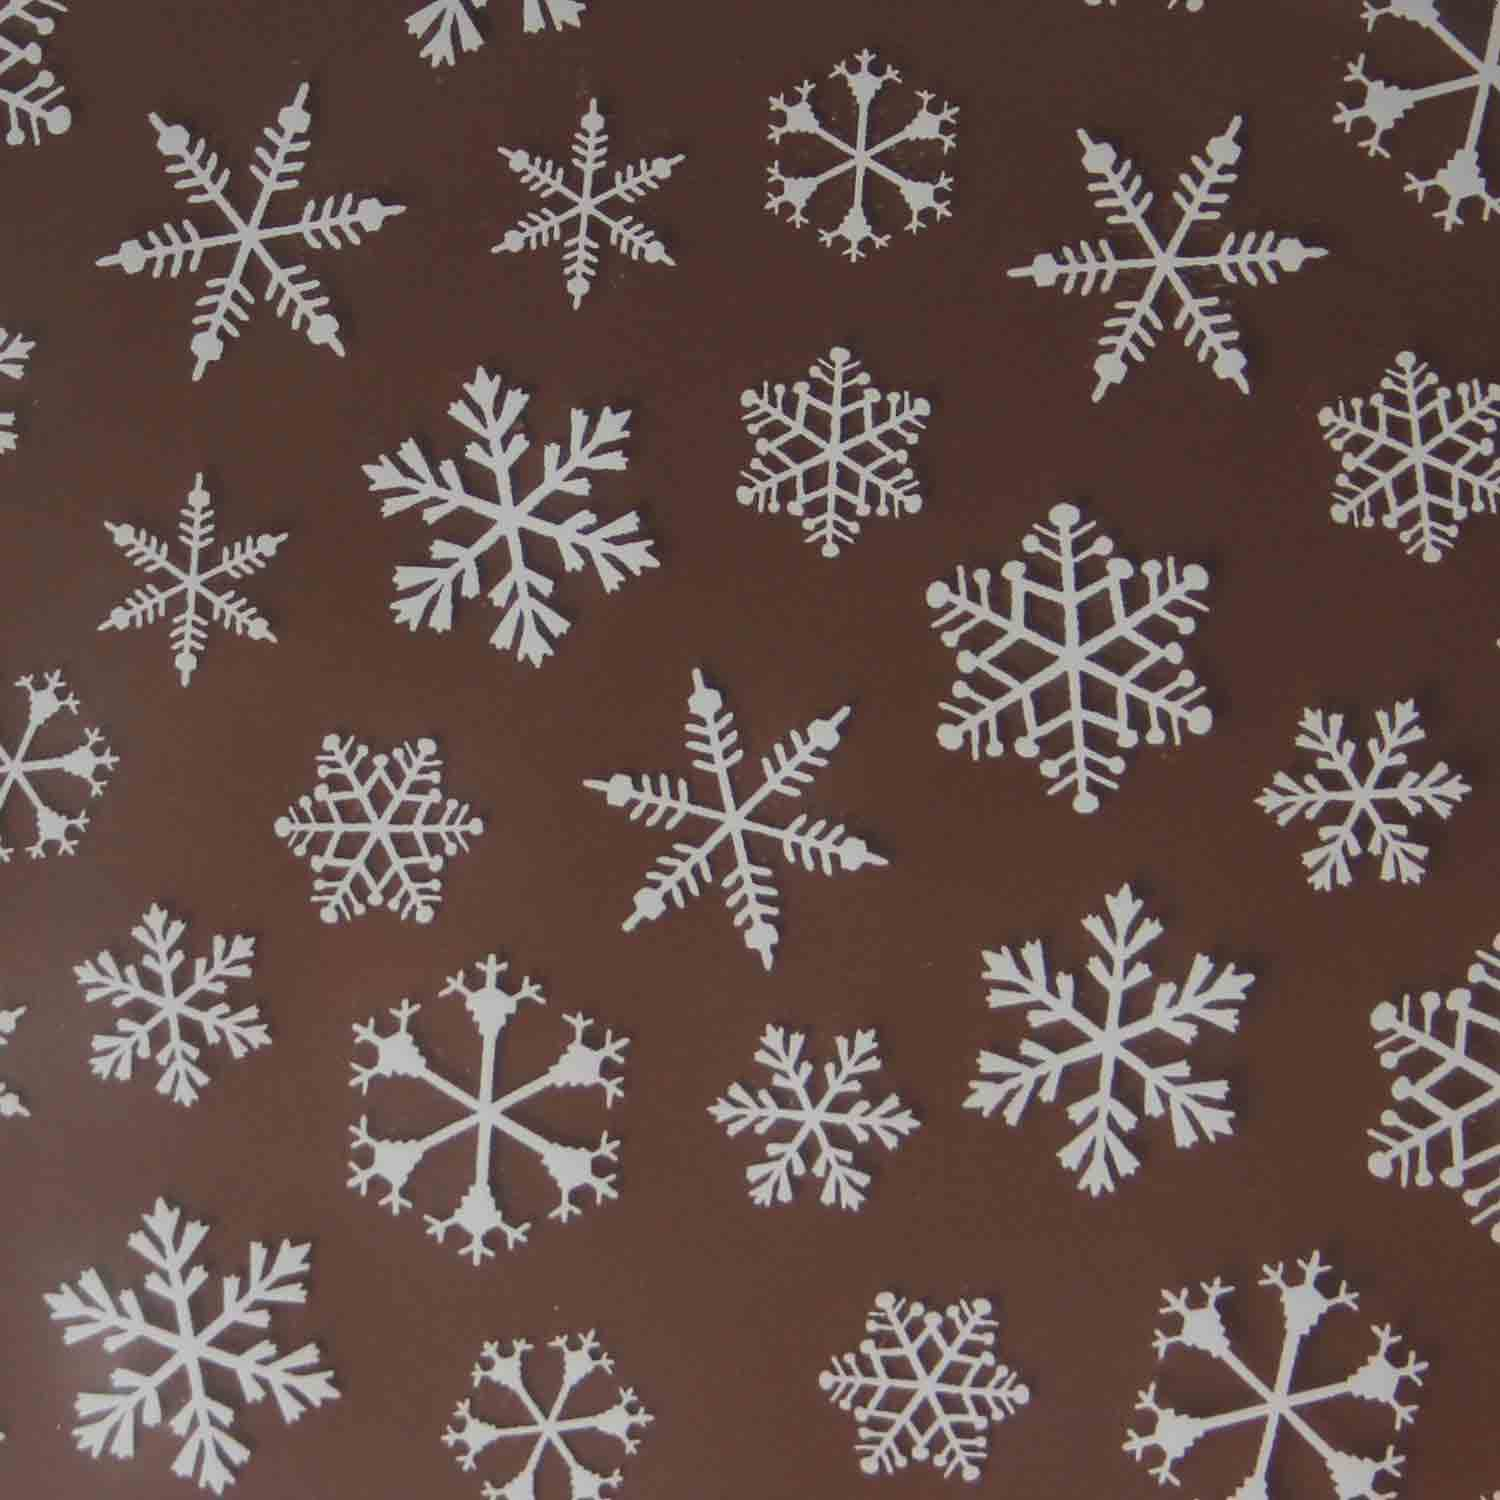 Chocolate Transfer Sheet-Snowflake